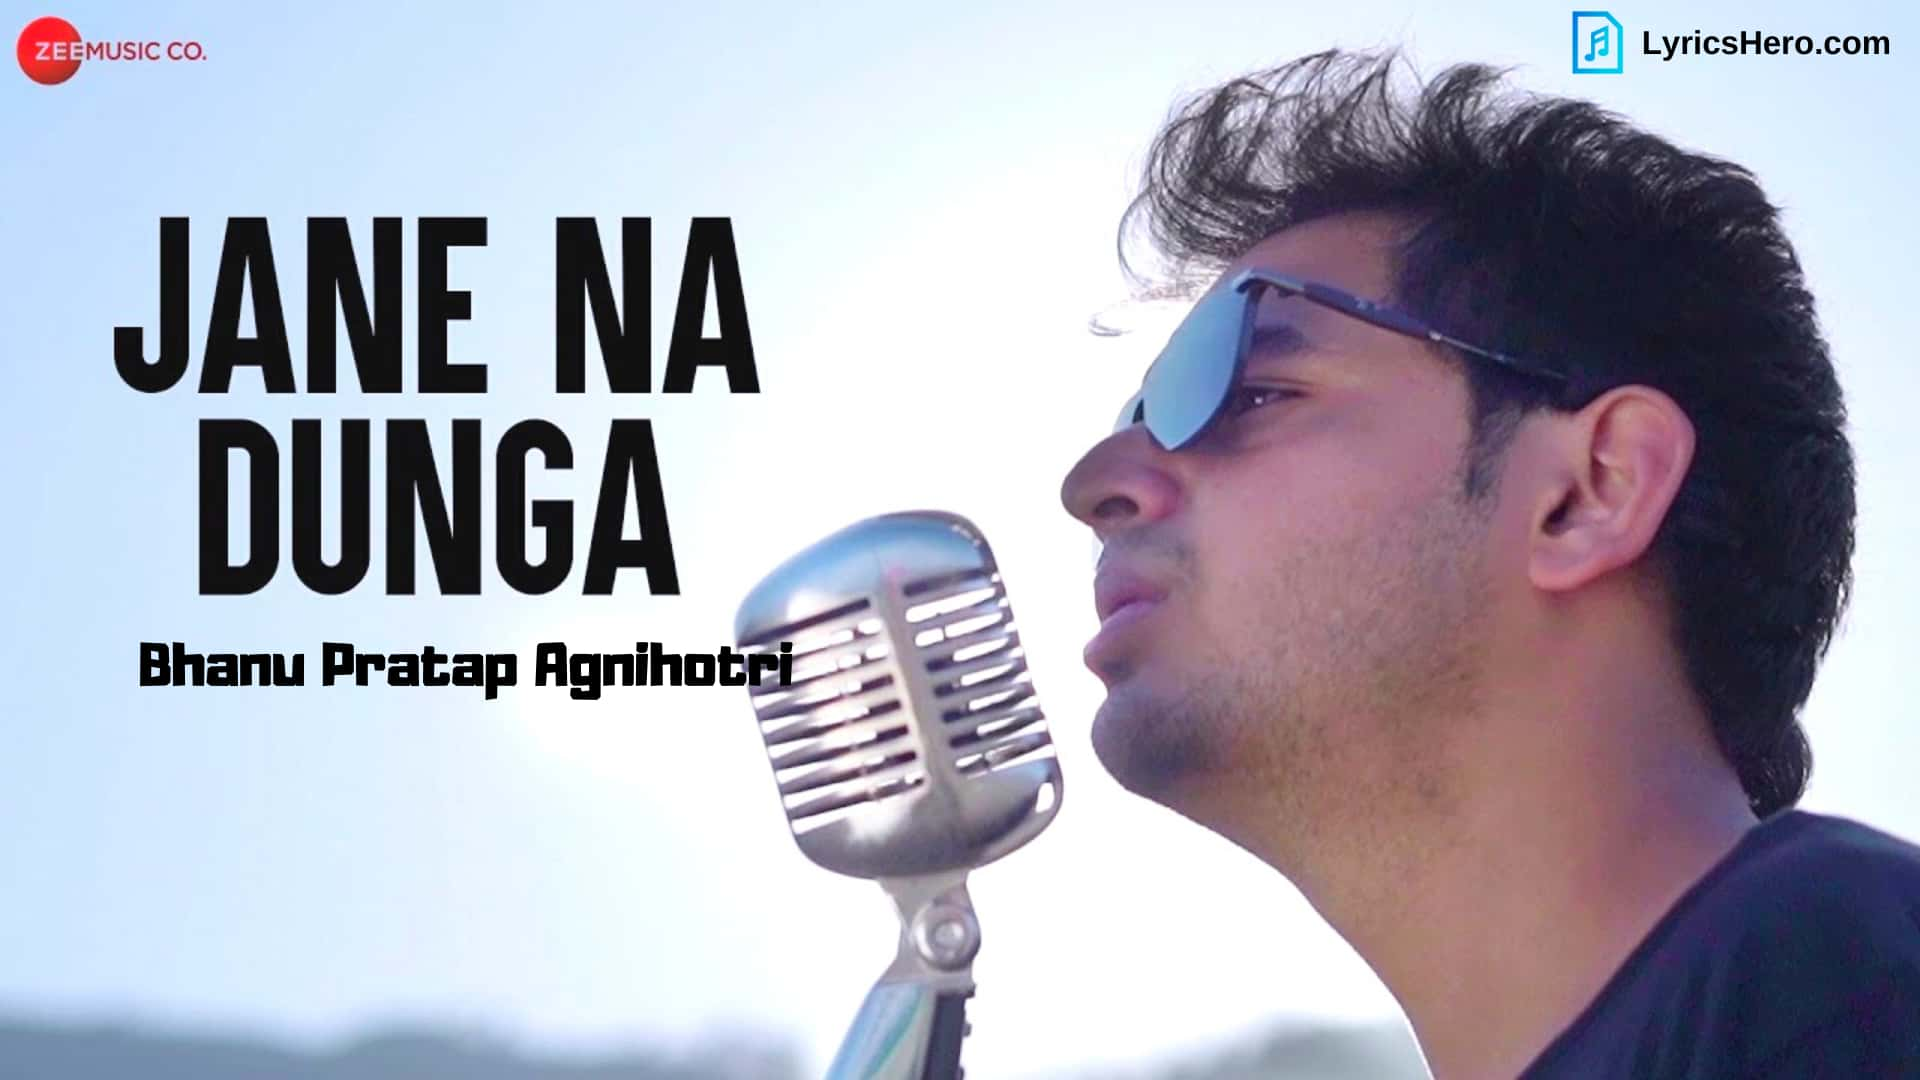 Jane Na Dunga Lyrics, Jane Na Dunga song Lyrics, Jane Na Dunga Lyrics Bhanu Pratap Agnihotri